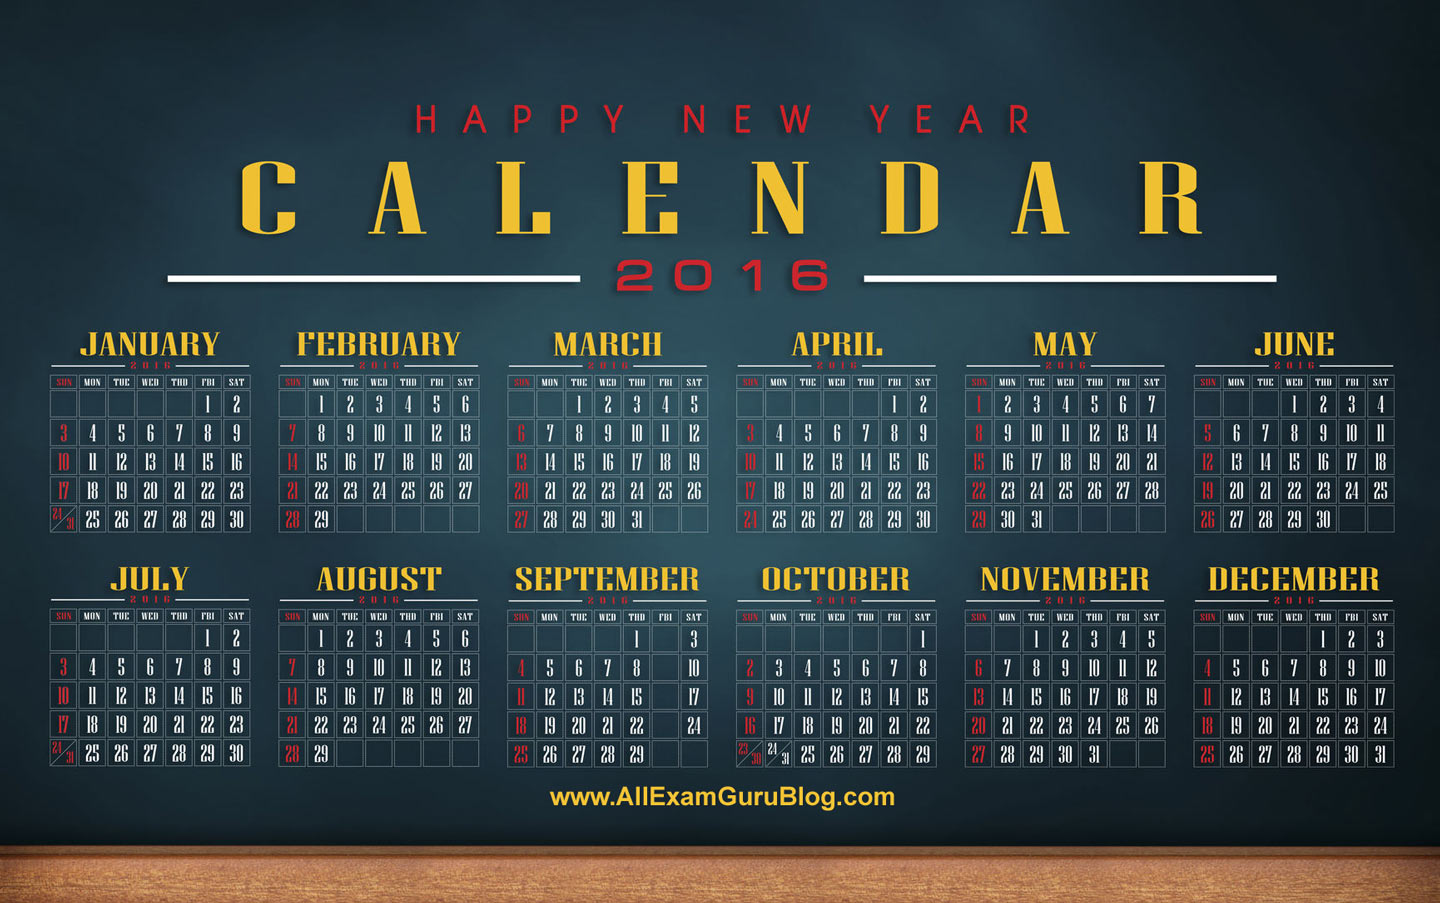 Calendar Computer Wallpaper : Calendar desktop wallpaper download